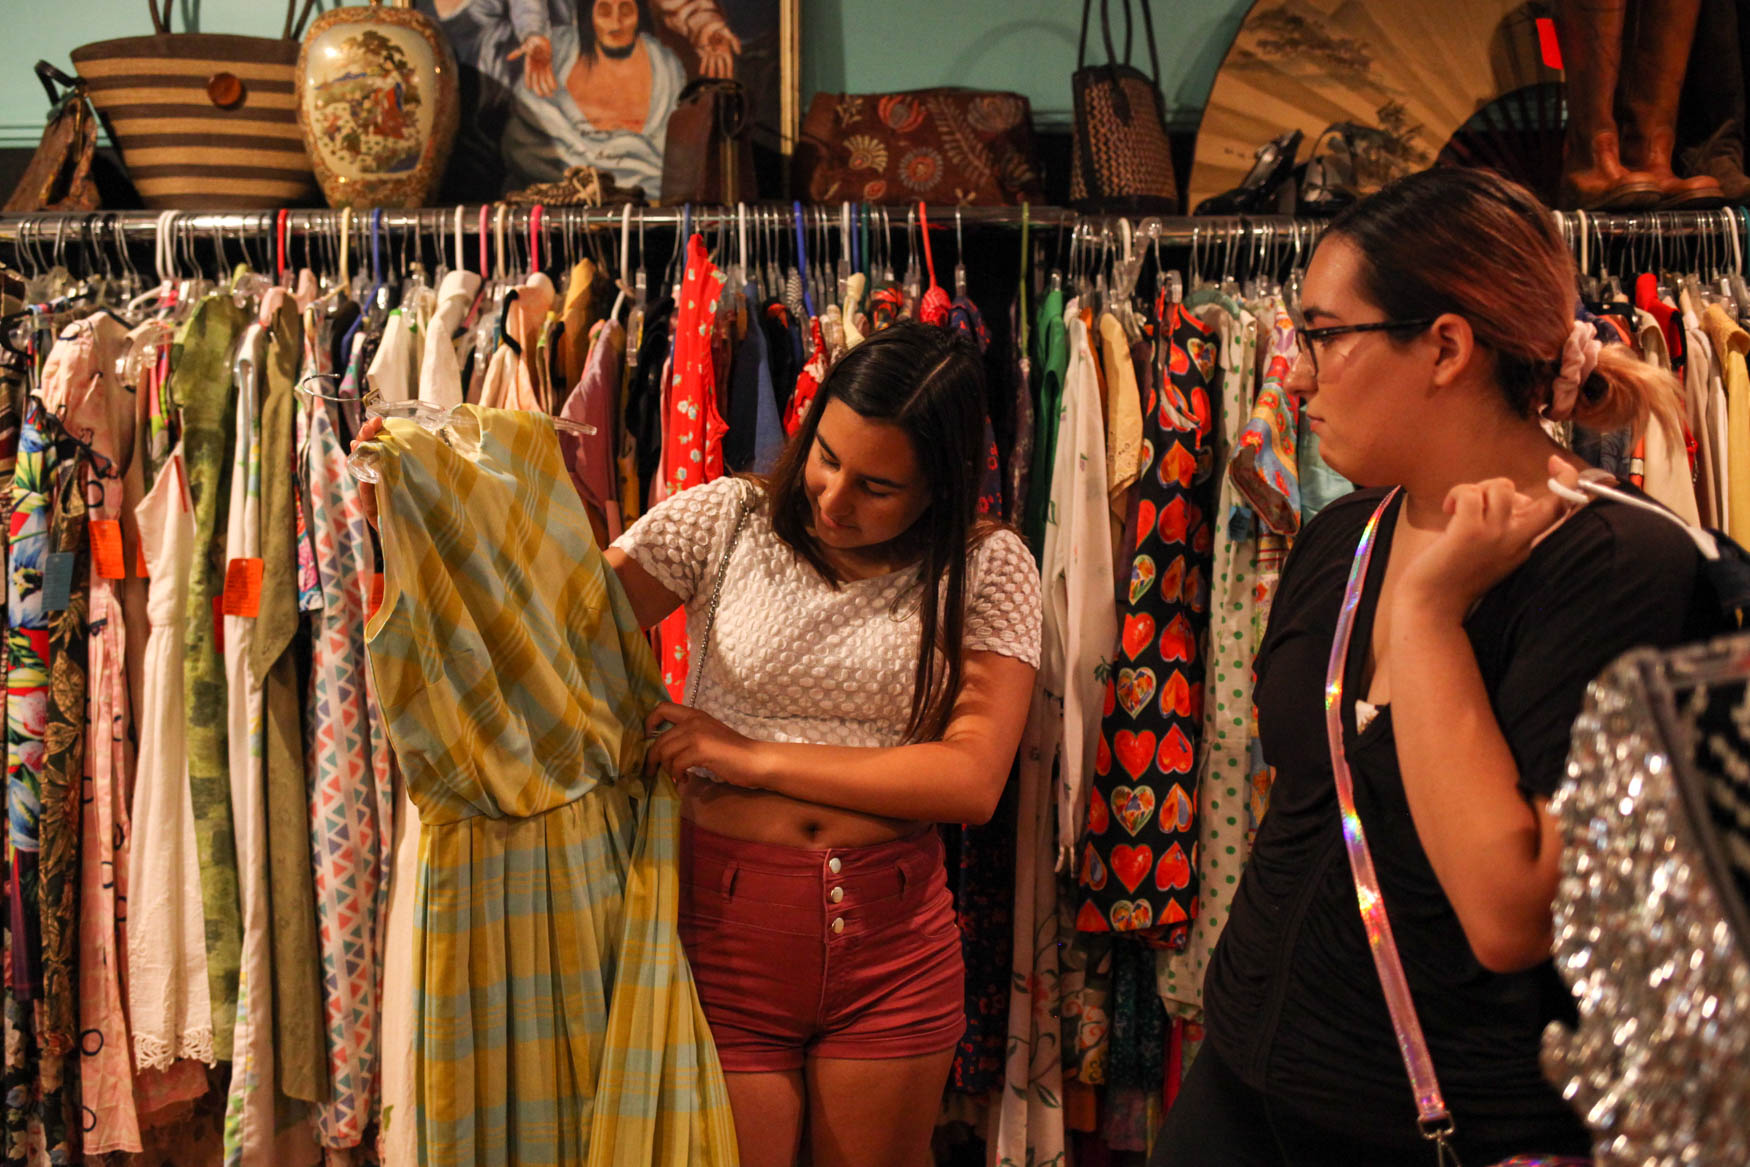 Isabella, left, and Alysia, right, shop in Baltimore. (Amanda Andrade-Rhoades/DC Refined)